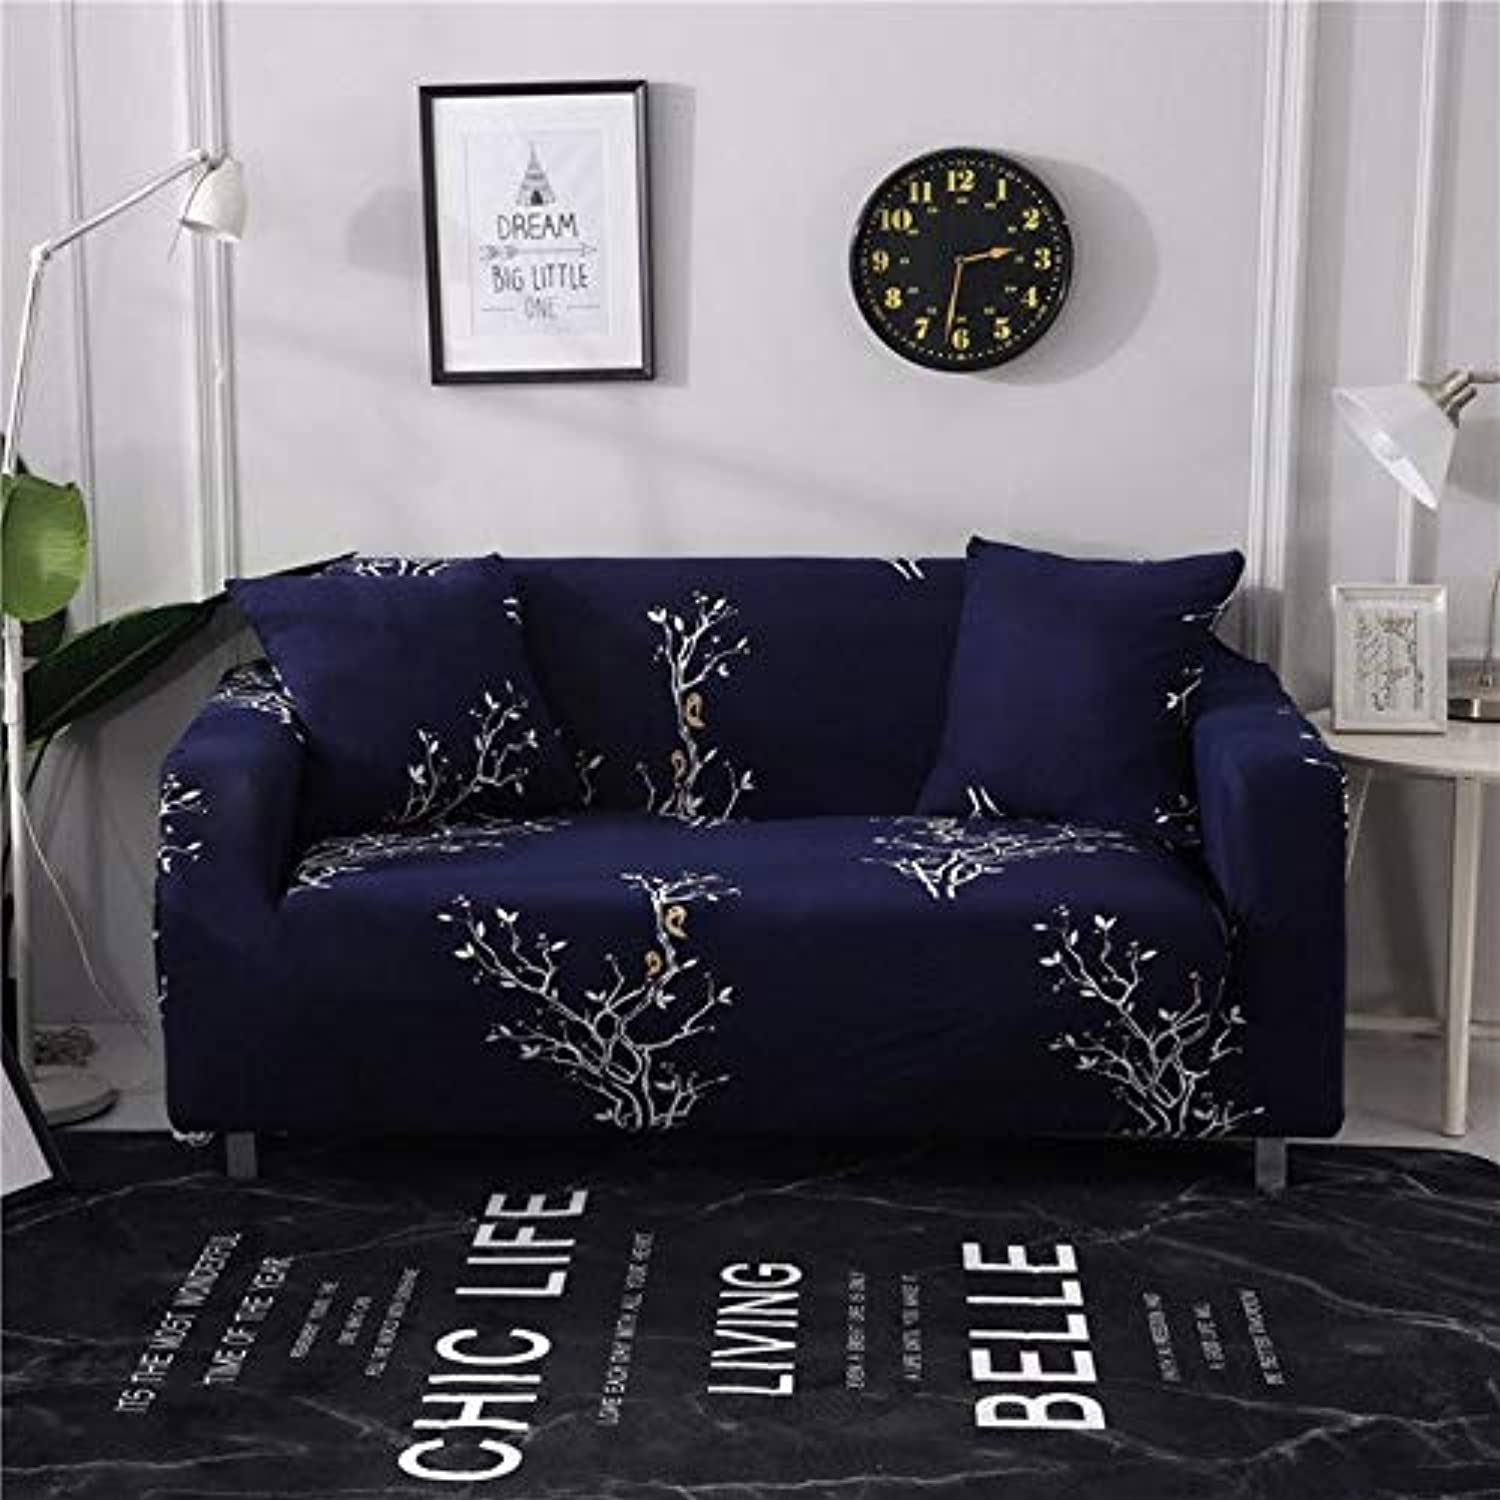 Lvory Stripe Sofa Cover All-Inclusive Elastic Spandex Slipcovers Stretch Corner Sectional Predective Couch Cover Nordic Simple   11, Four Seater